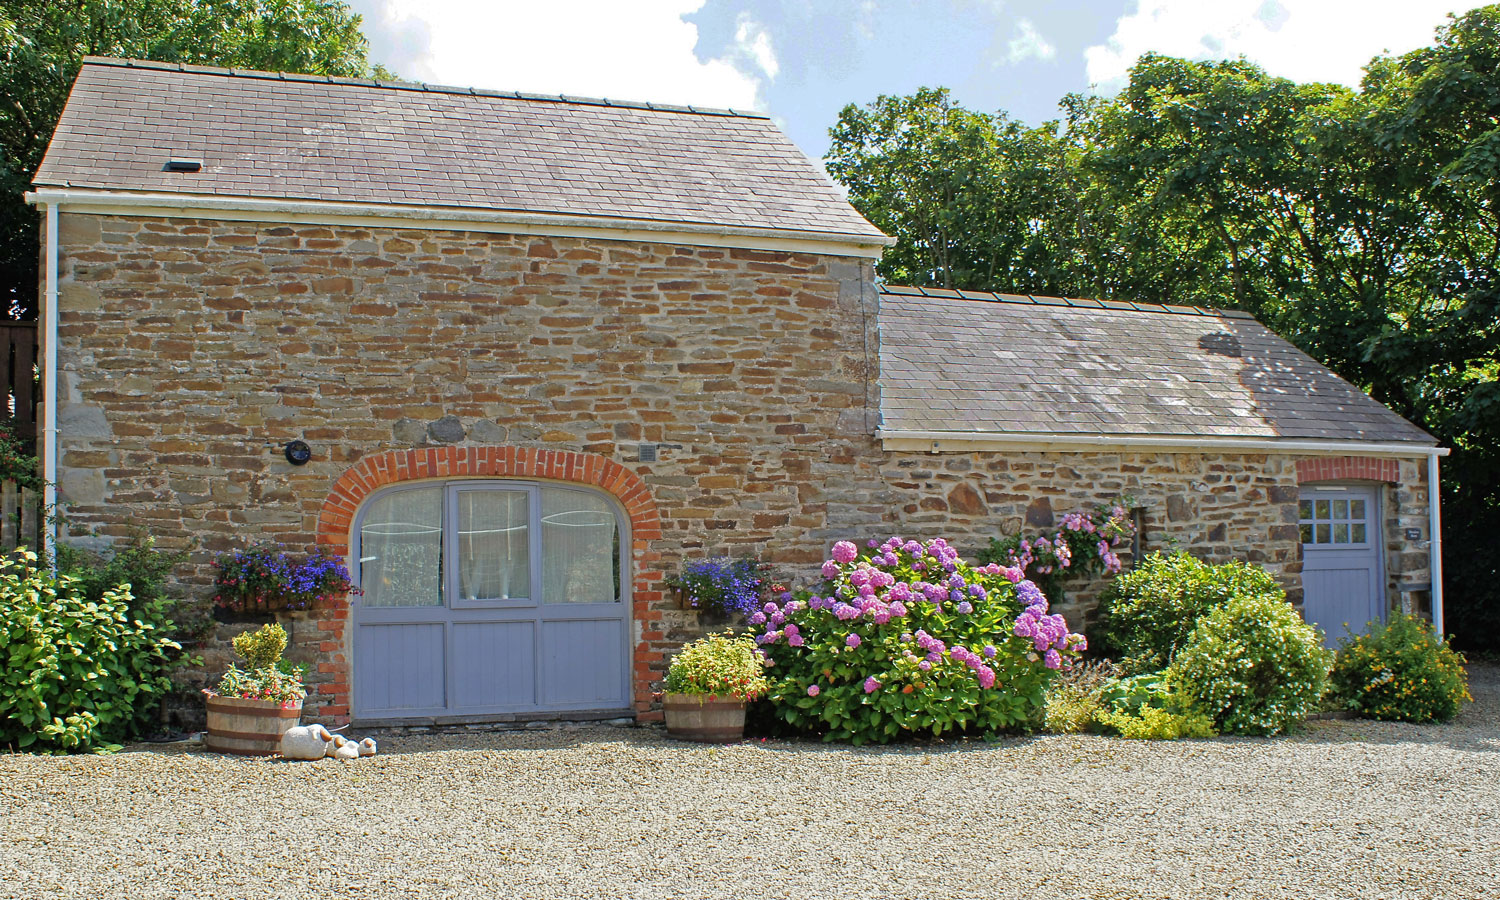 Meadow Barn Holiday Cottage - quality accommodation for 4 people close to Newgale Beach